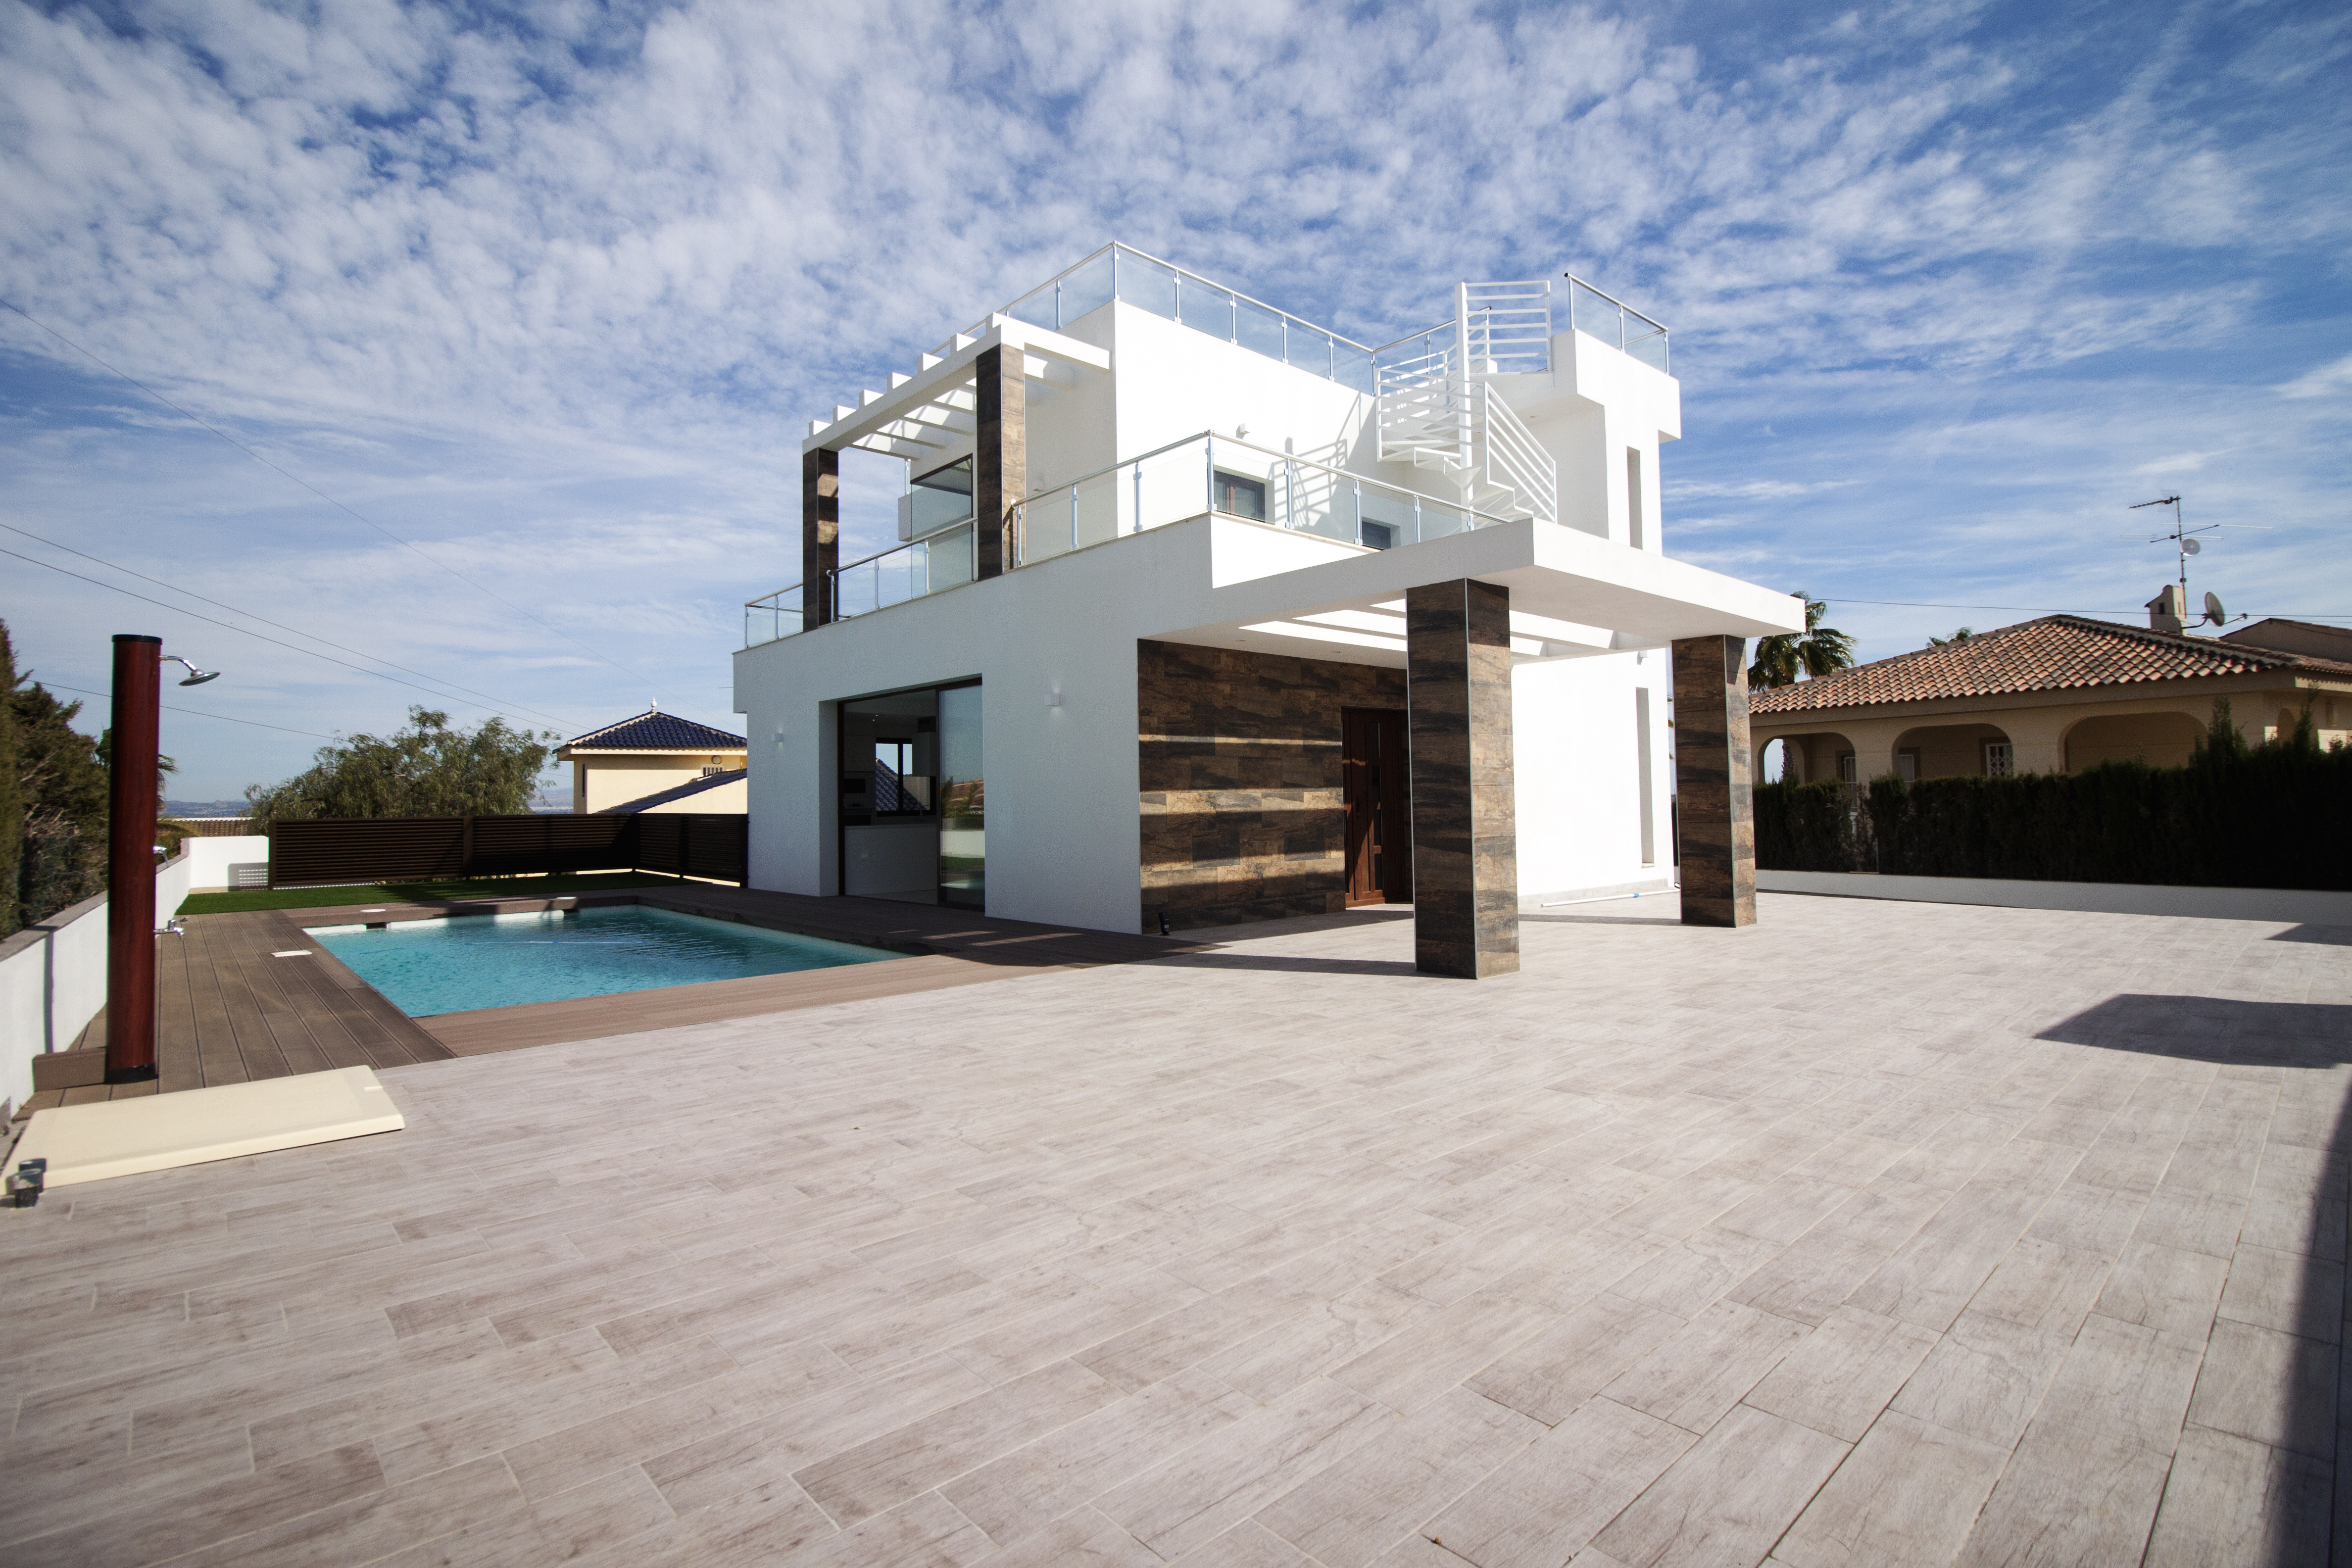 5 bedroom Villa for sale in Cuidad Quesada